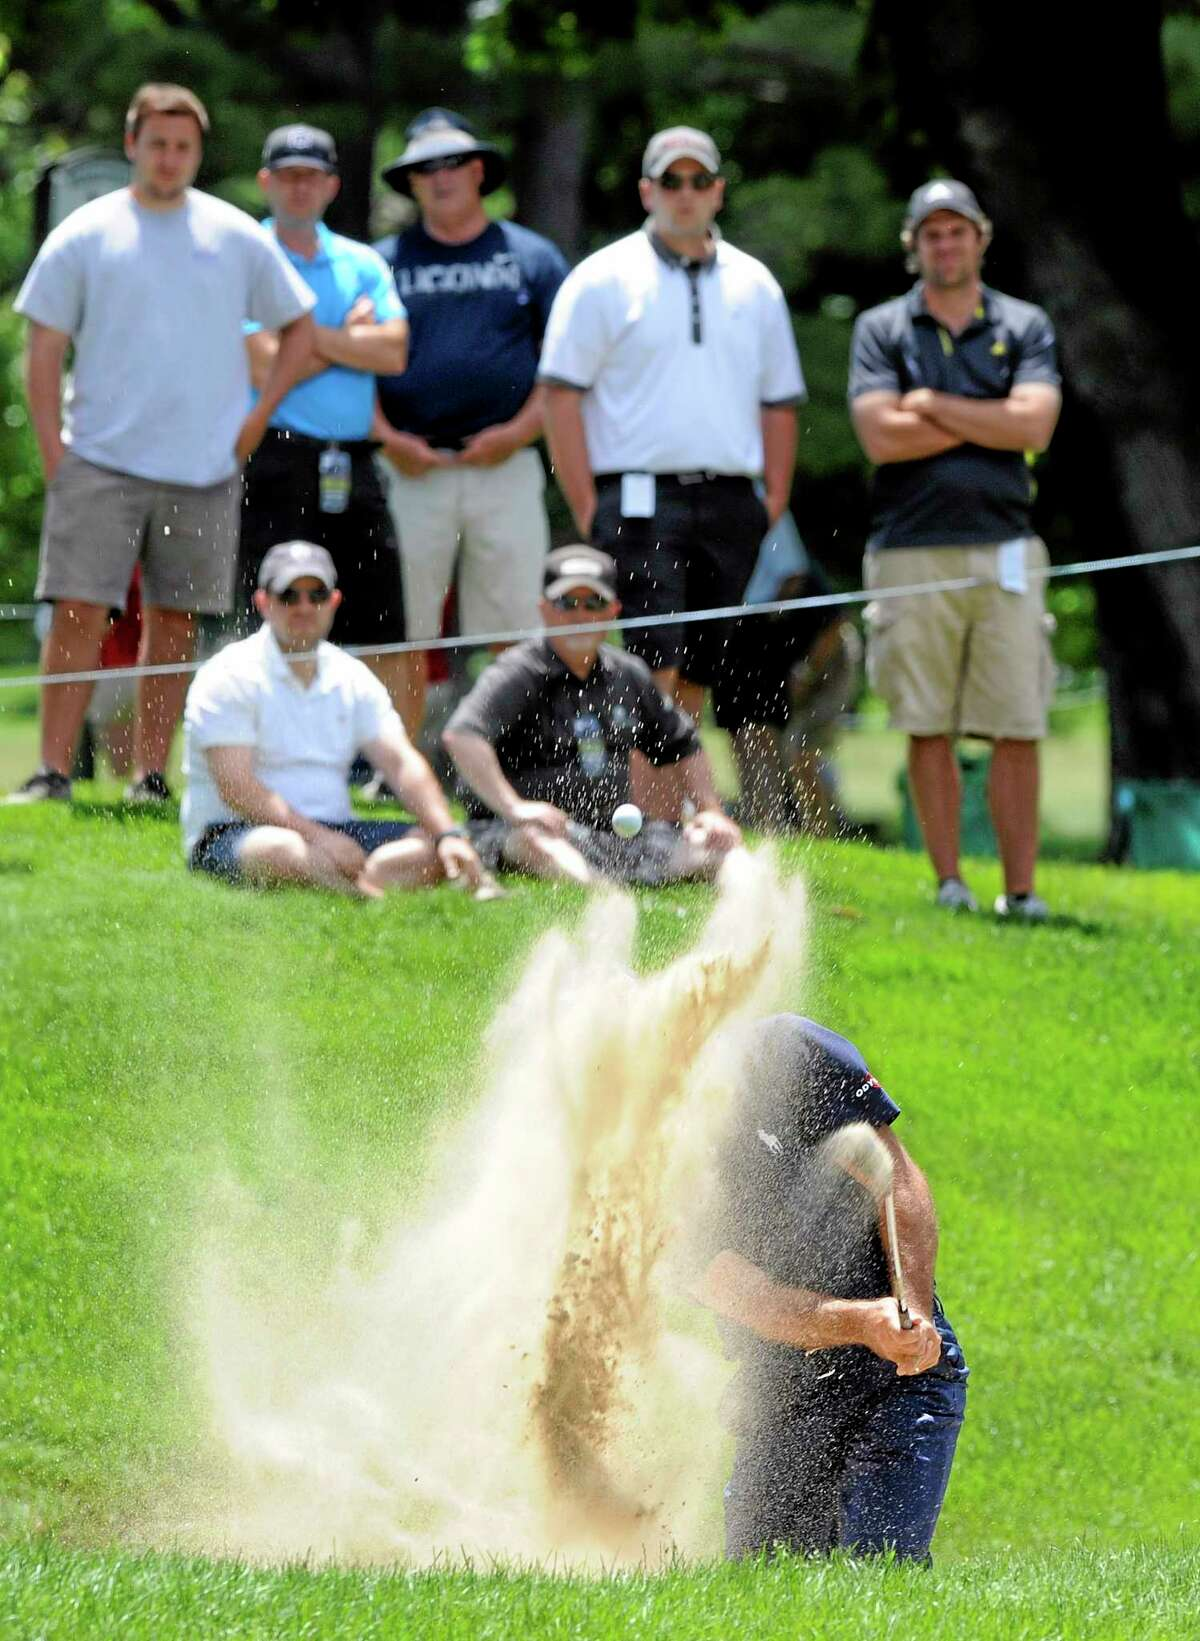 The crowd looks on as Jonathan Byrd hits out of a greenside bunker on the seventh hole during the second round of the Travelers Championship on Friday in Cromwell. Byrd aced the par-3 11th.